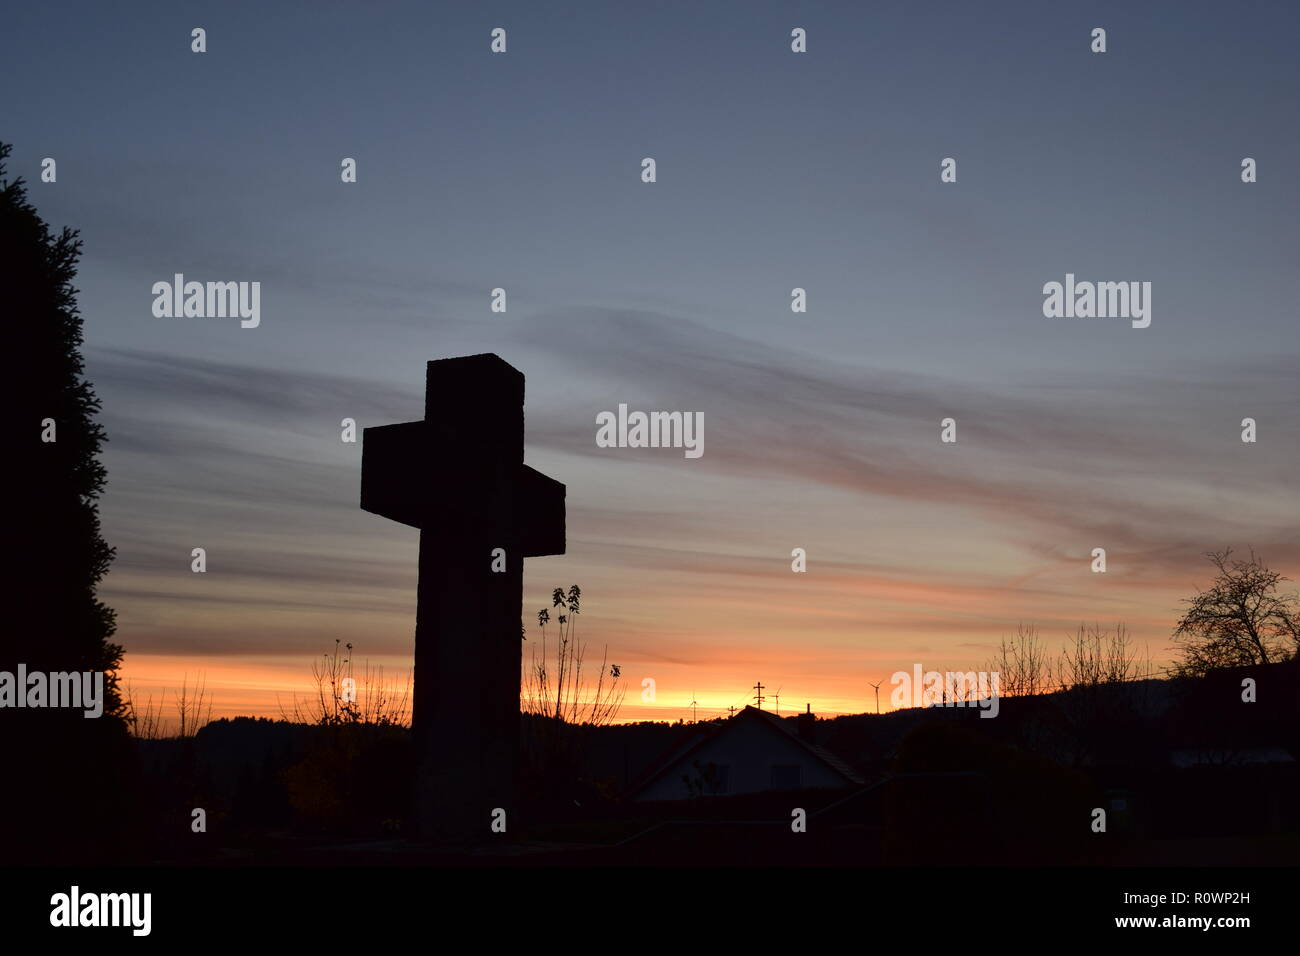 Timeline of the evening dusk sky viewed from behind a sand stone cross sculpture  during the sundown sun in the civil cemetery Reimsbach, Saarland, - Stock Image